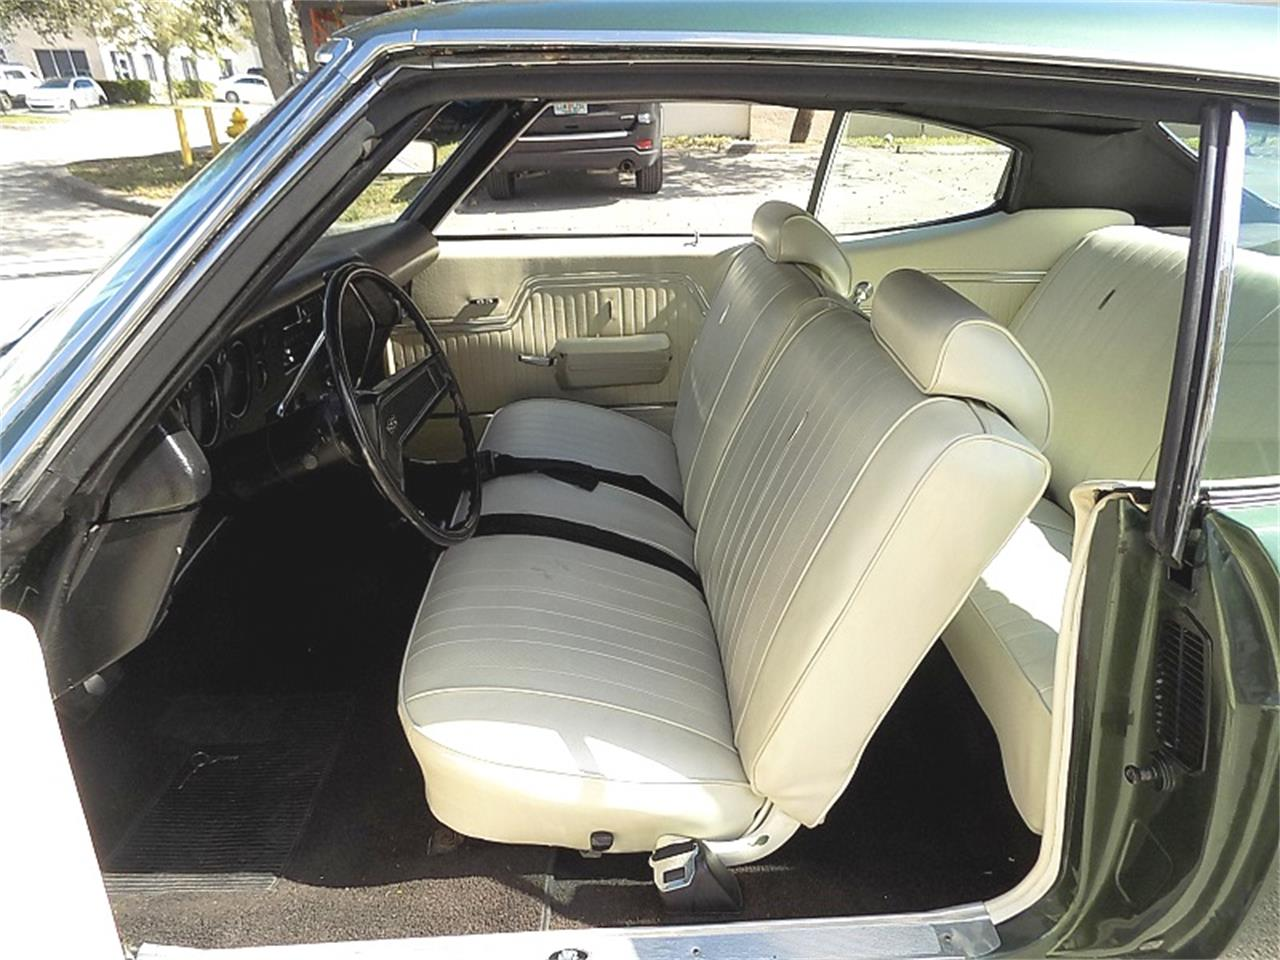 Large Picture of '70 Chevrolet Chevelle SS located in POMPANO BEACH Florida - $38,500.00 - PF2R